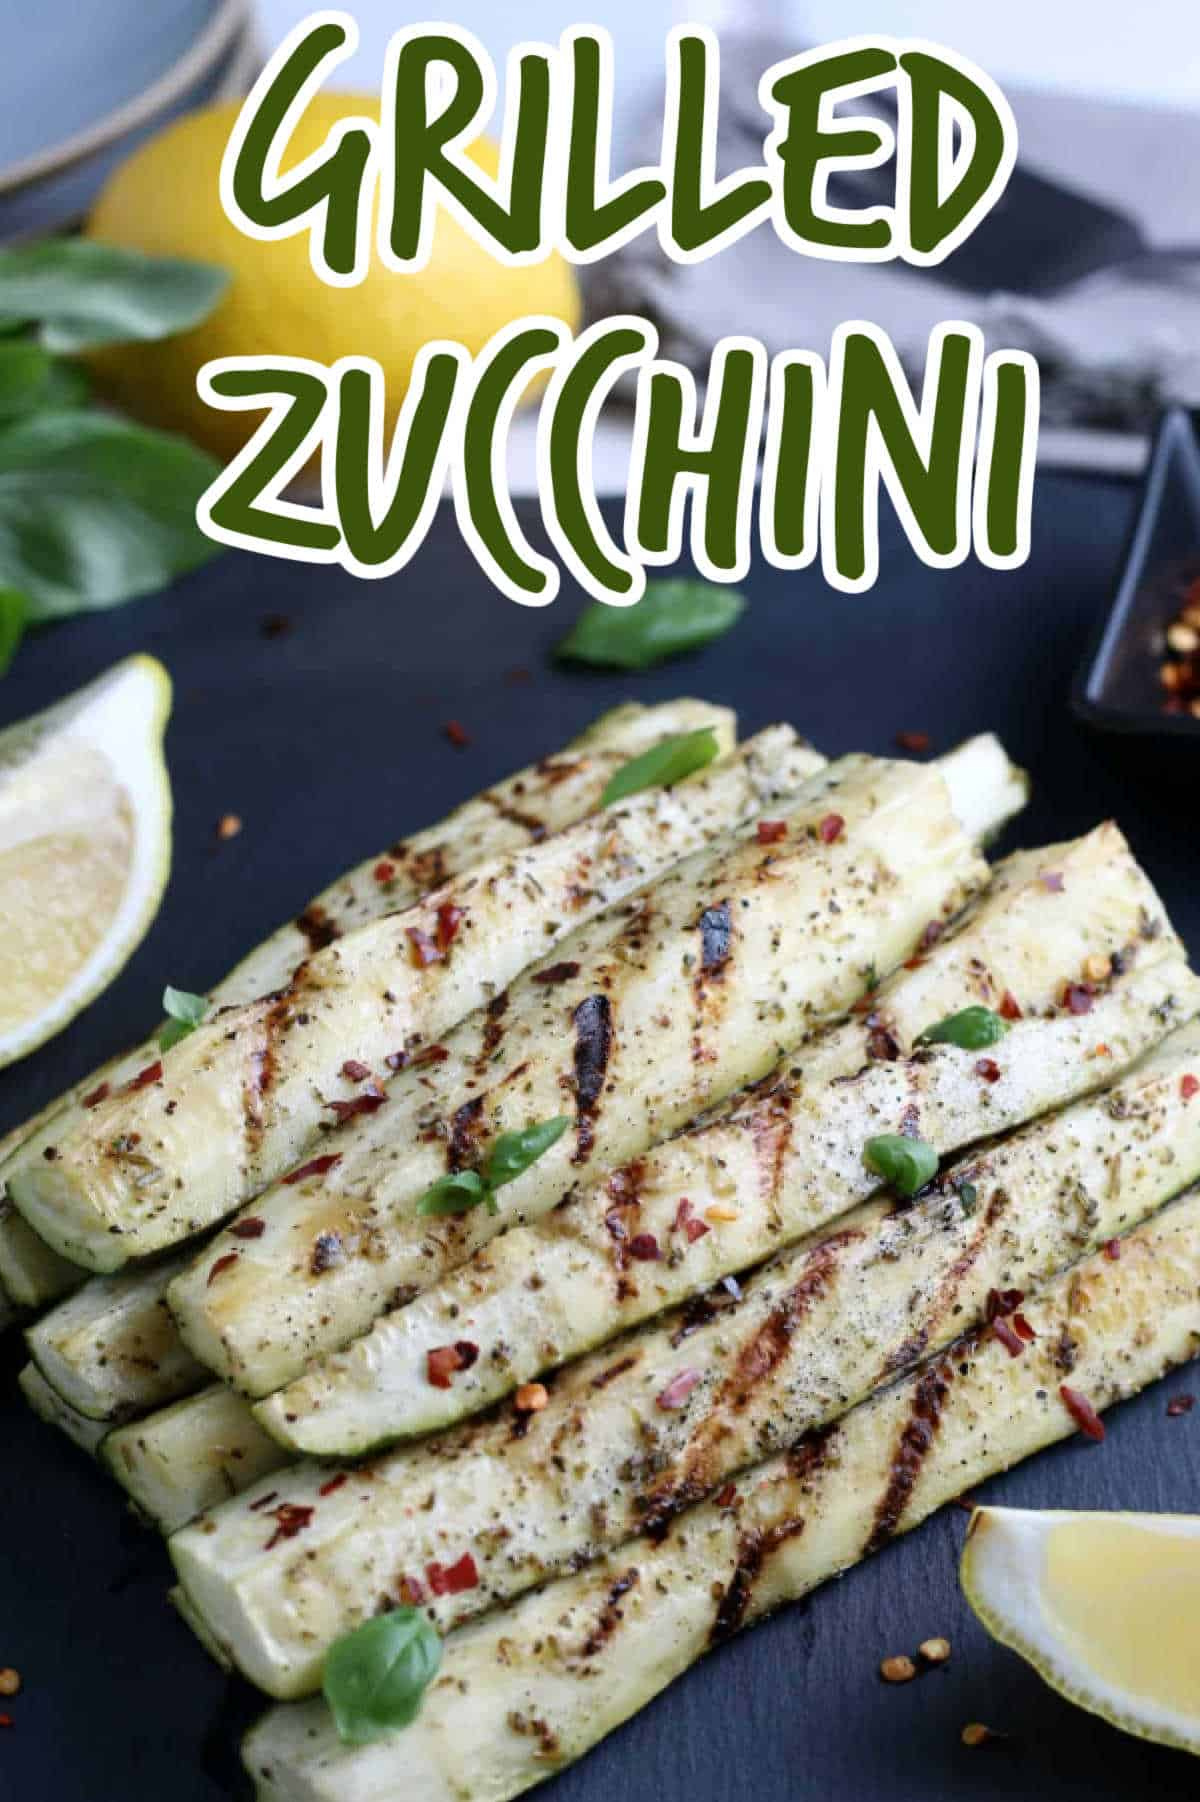 Closeup photo of grilled zucchini spears stacked in a pyramid with lemon wedges on the side. Text above